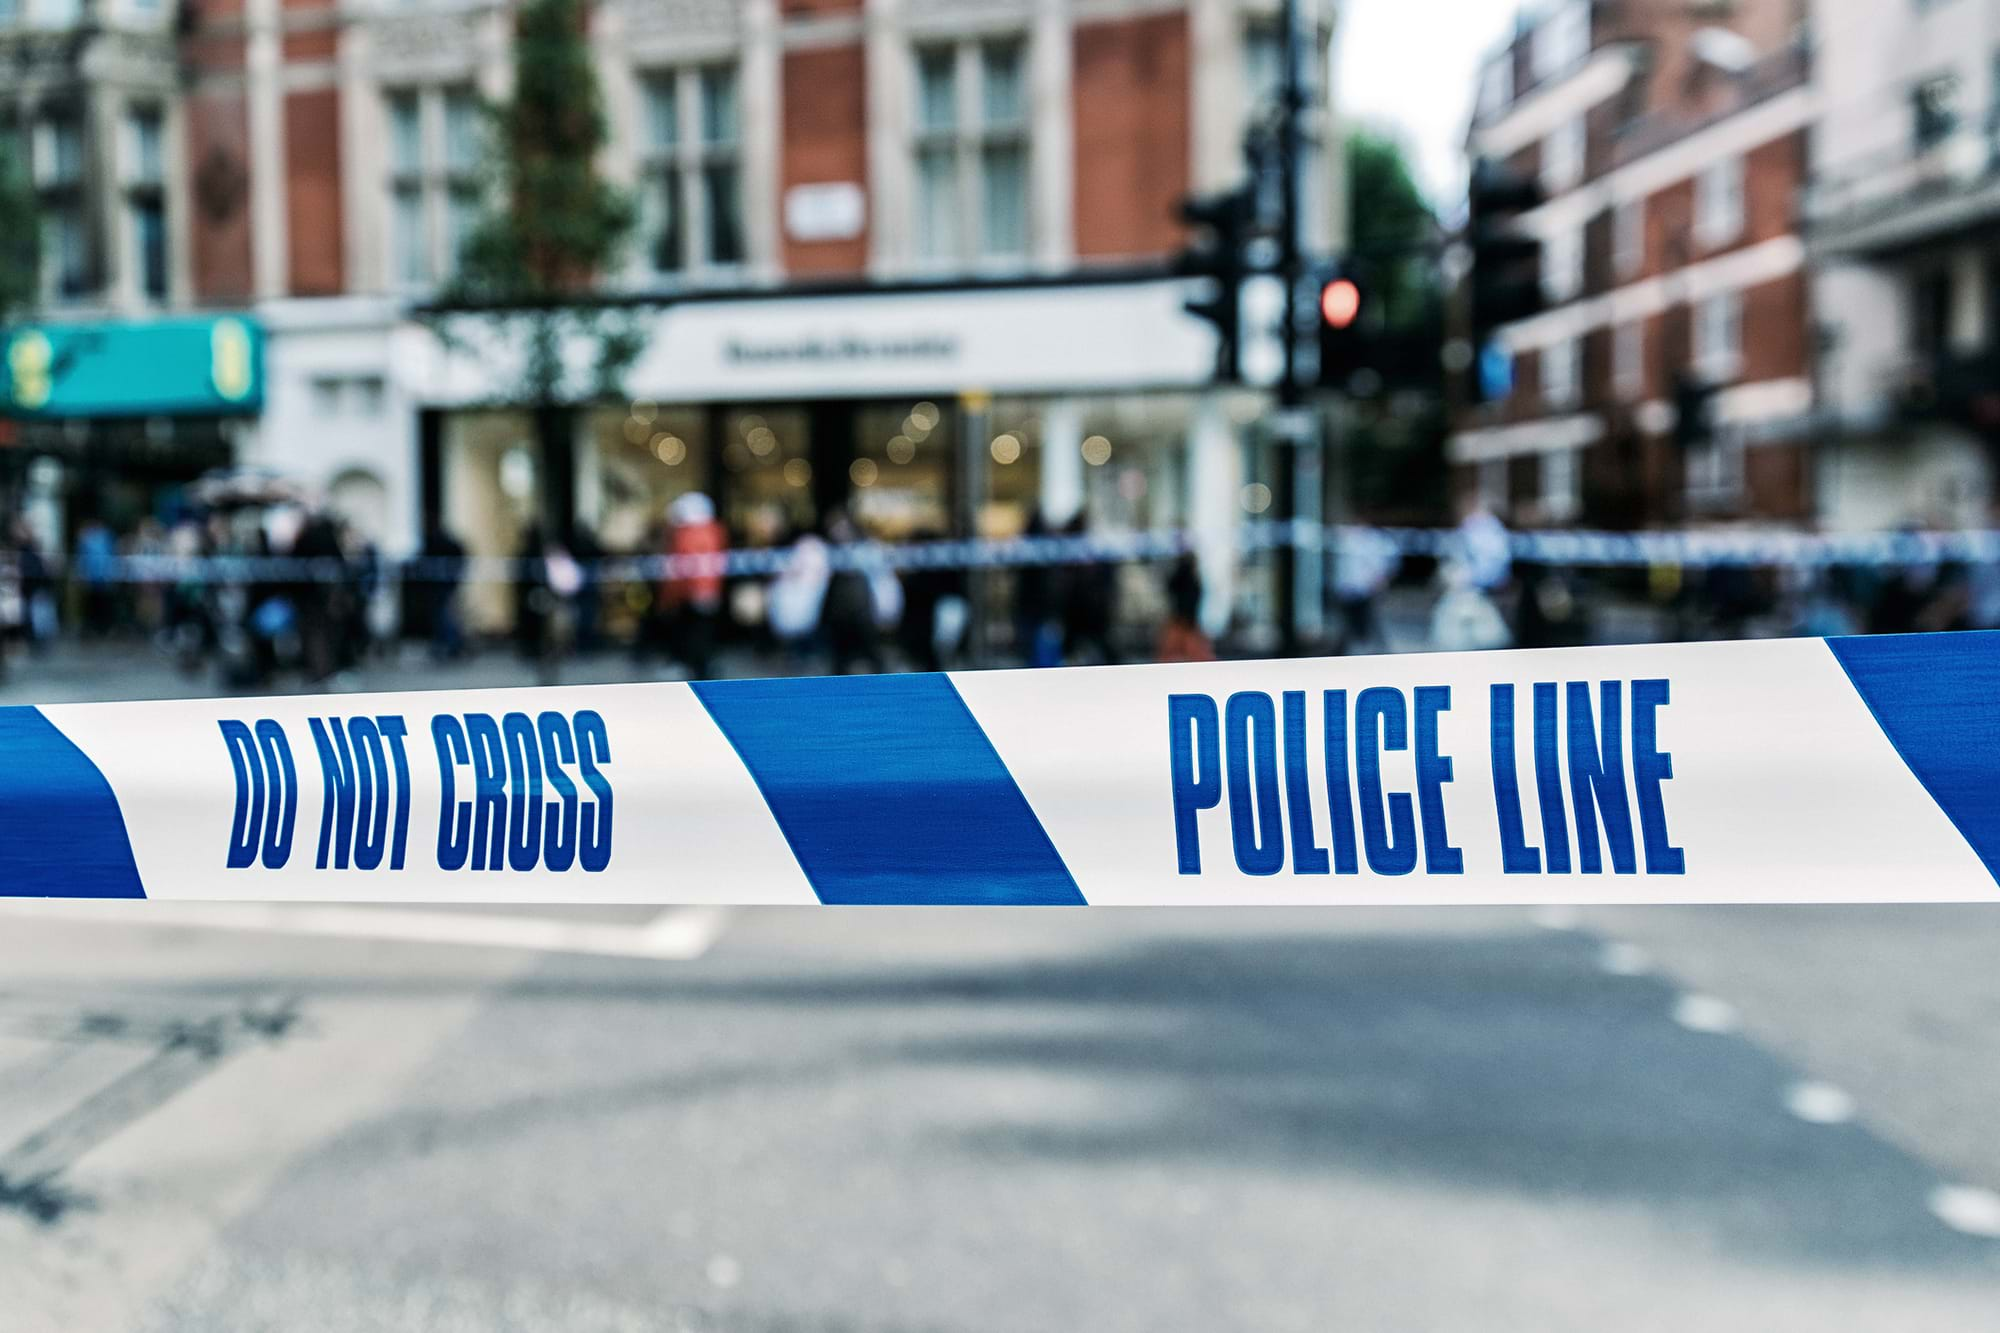 Police 'do not cross' tape on a busy highstreet